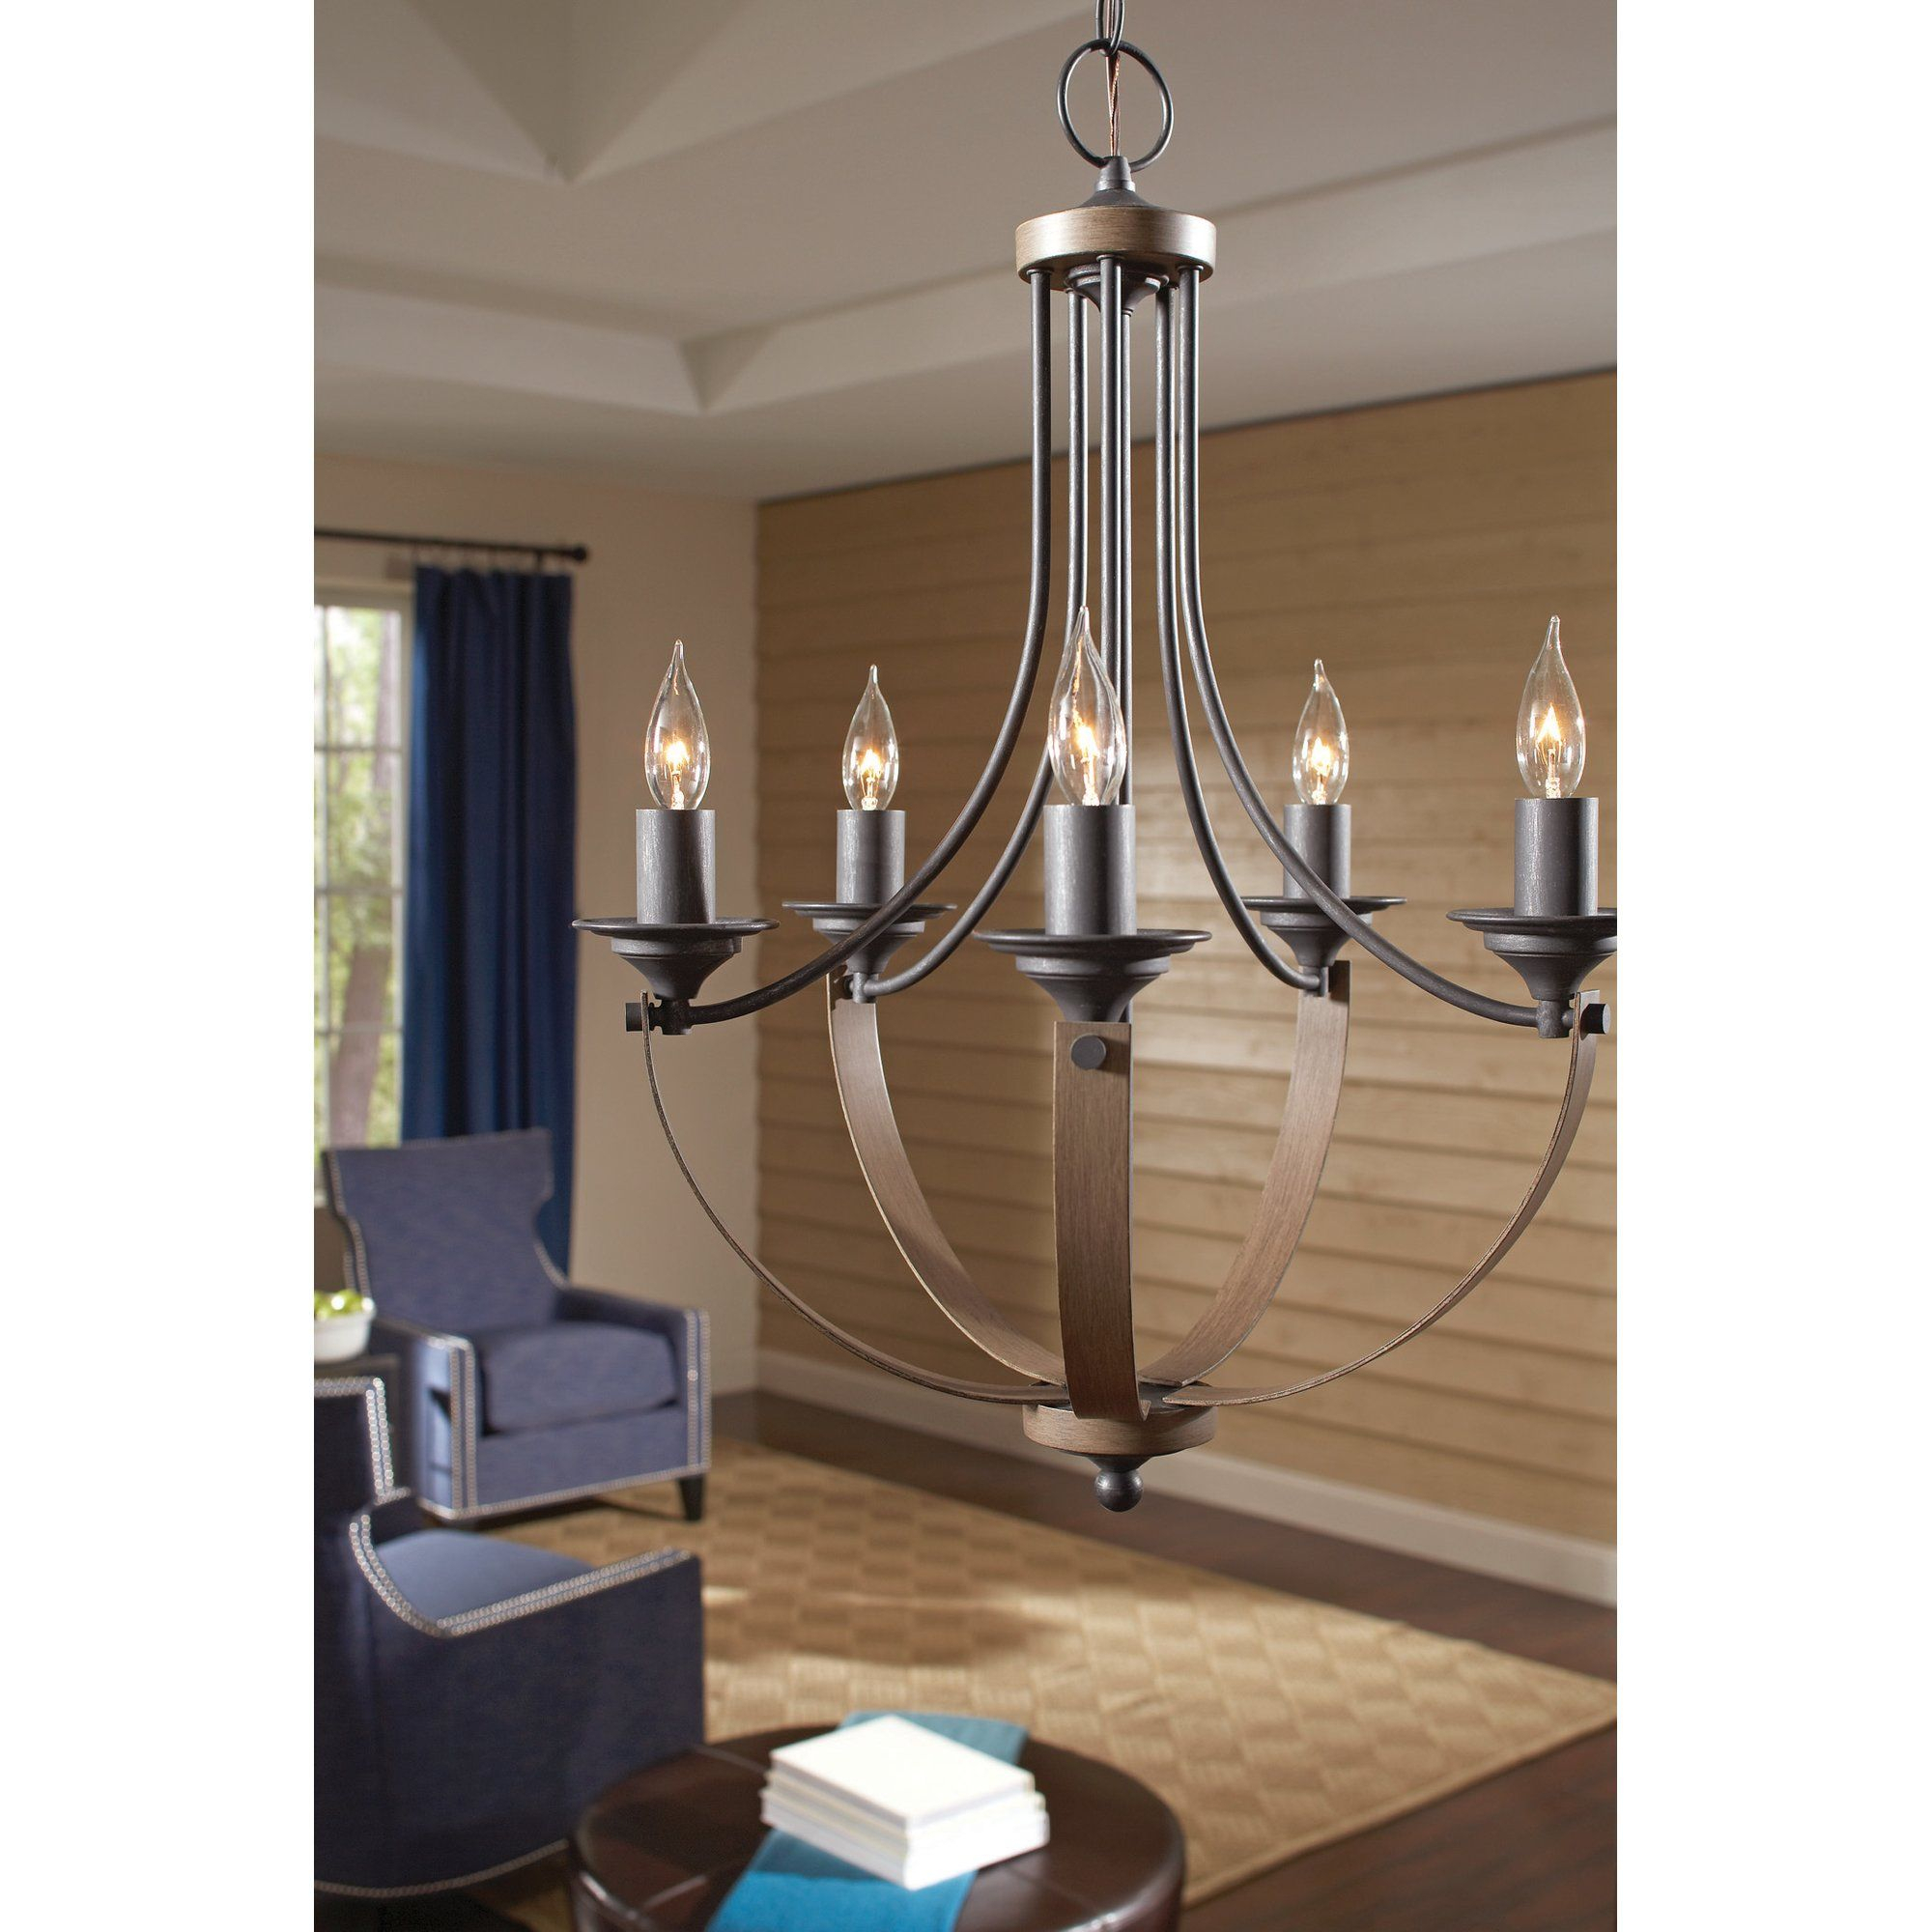 25 Camilla 9 Light Candle Style Chandelier – Divineducation Pertaining To Armande Candle Style Chandeliers (Gallery 24 of 30)